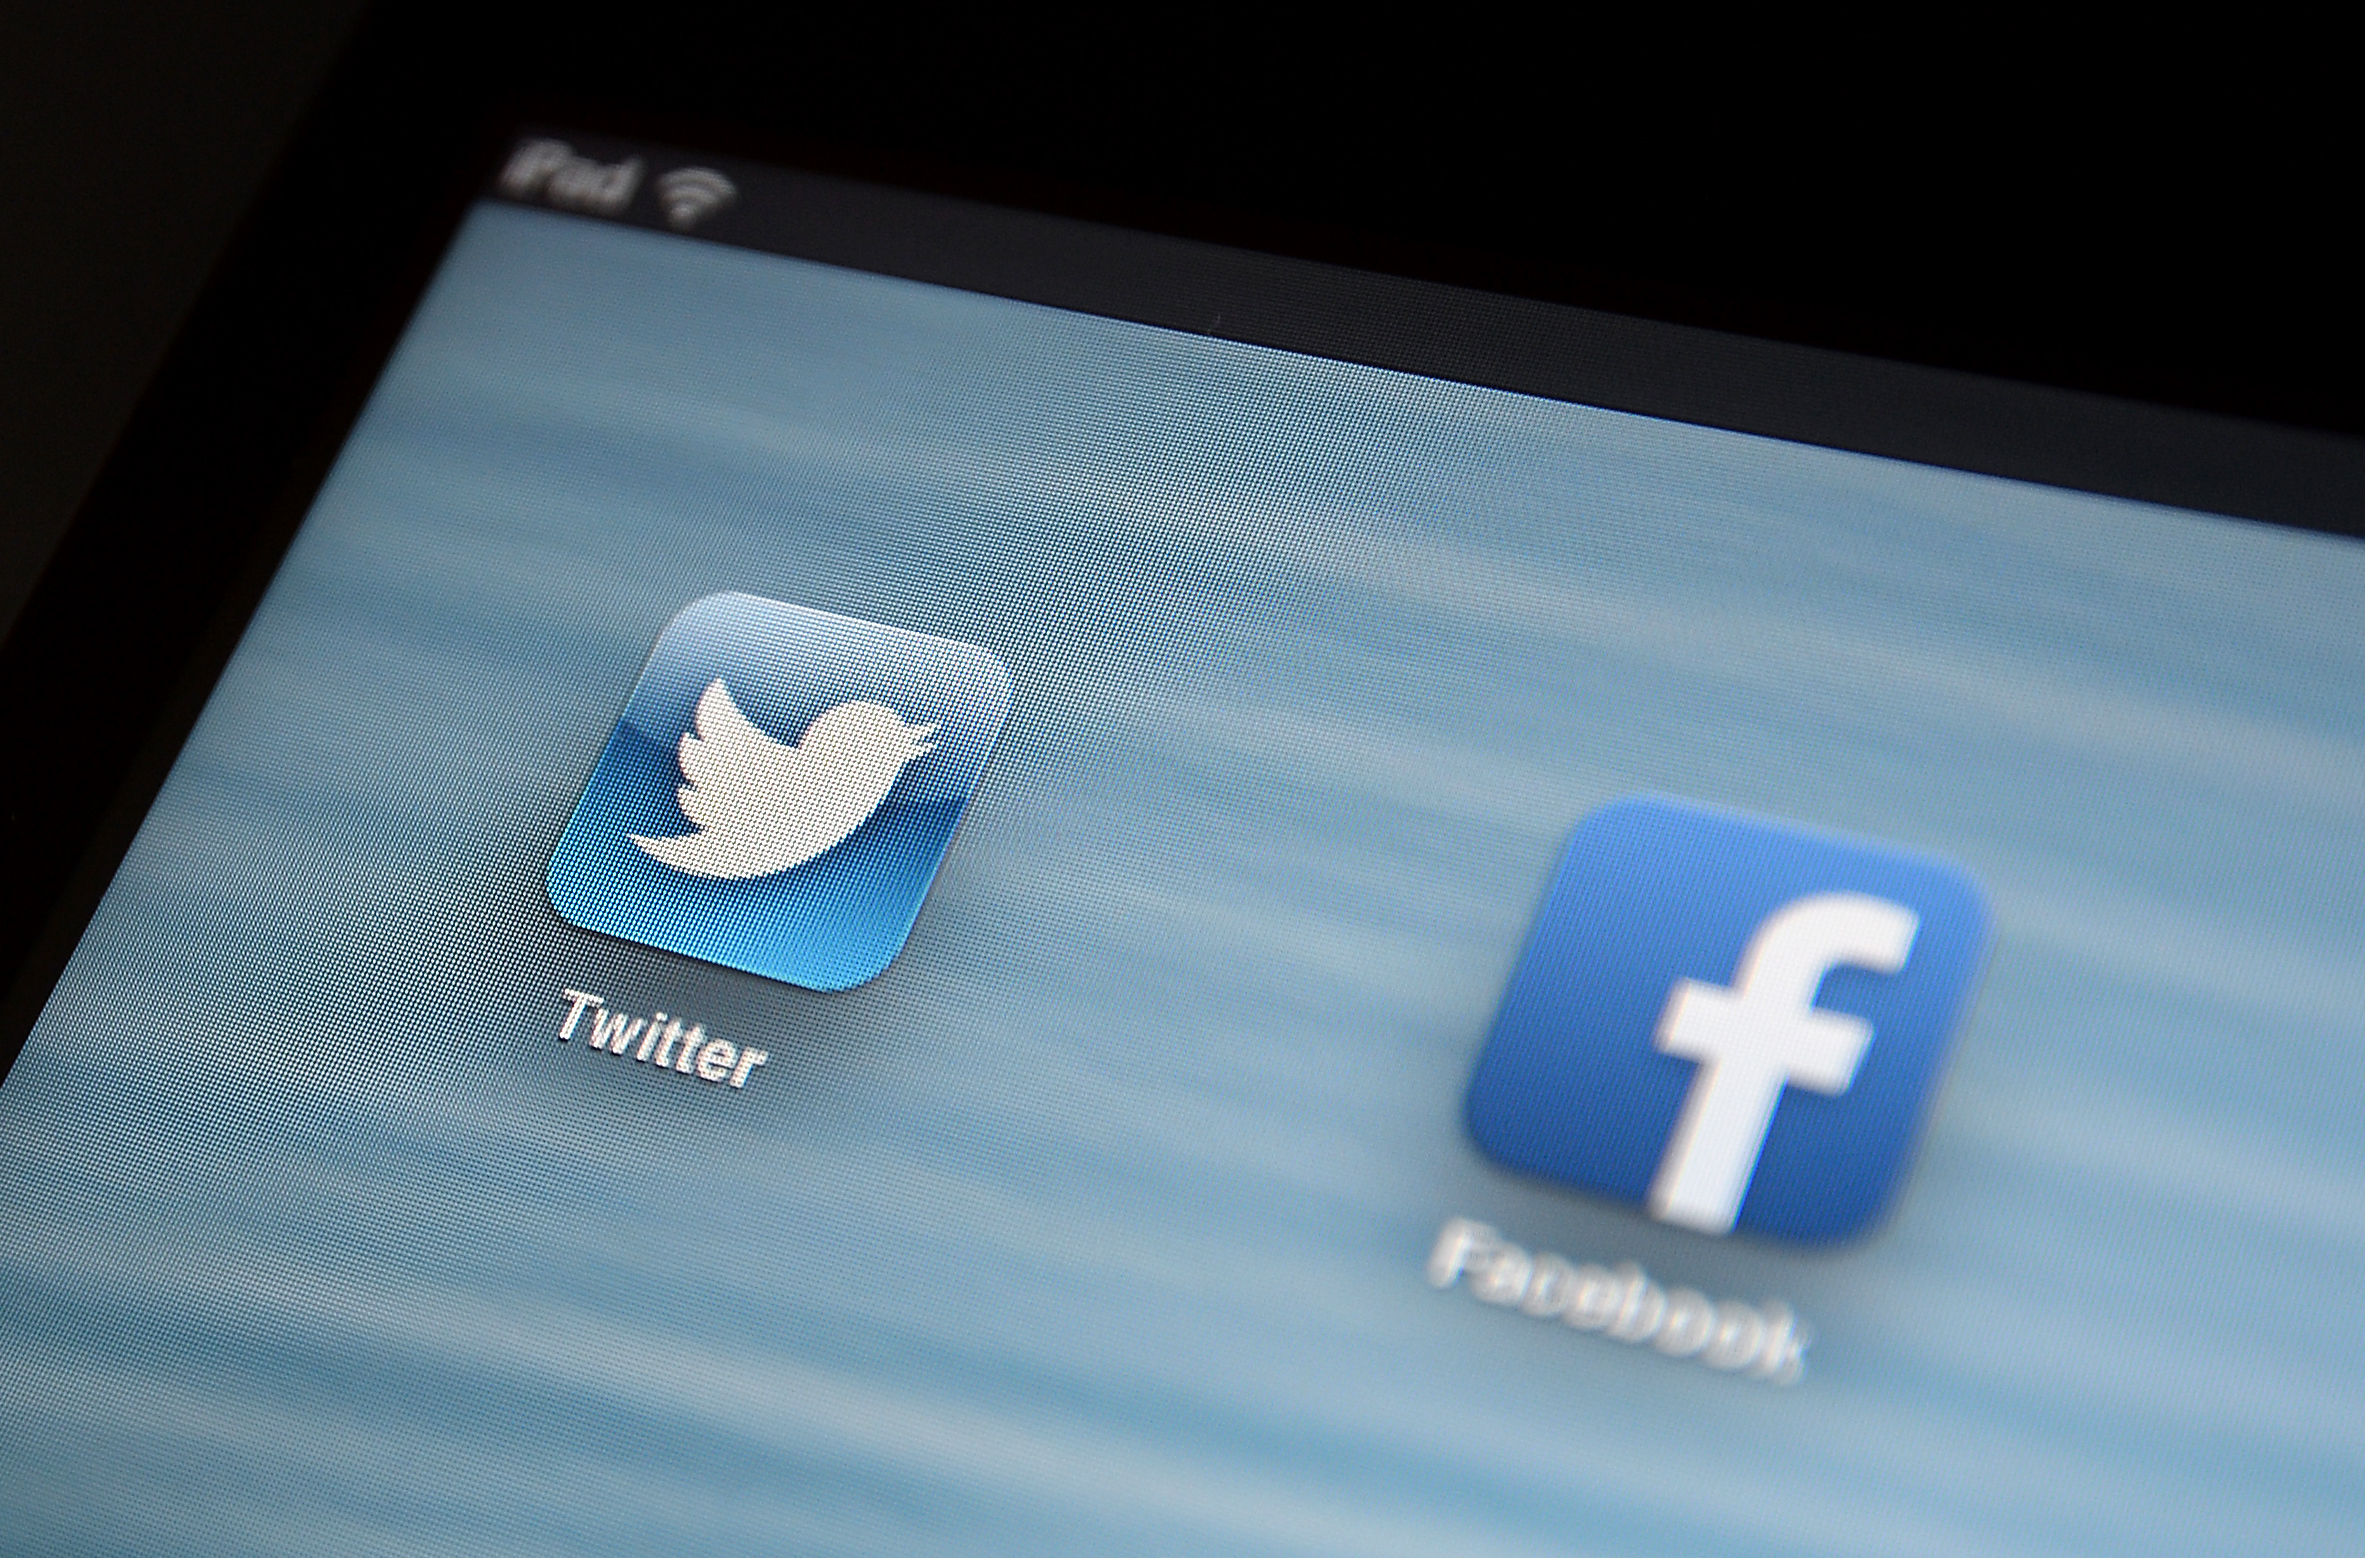 social media apps Twitter and Facebook